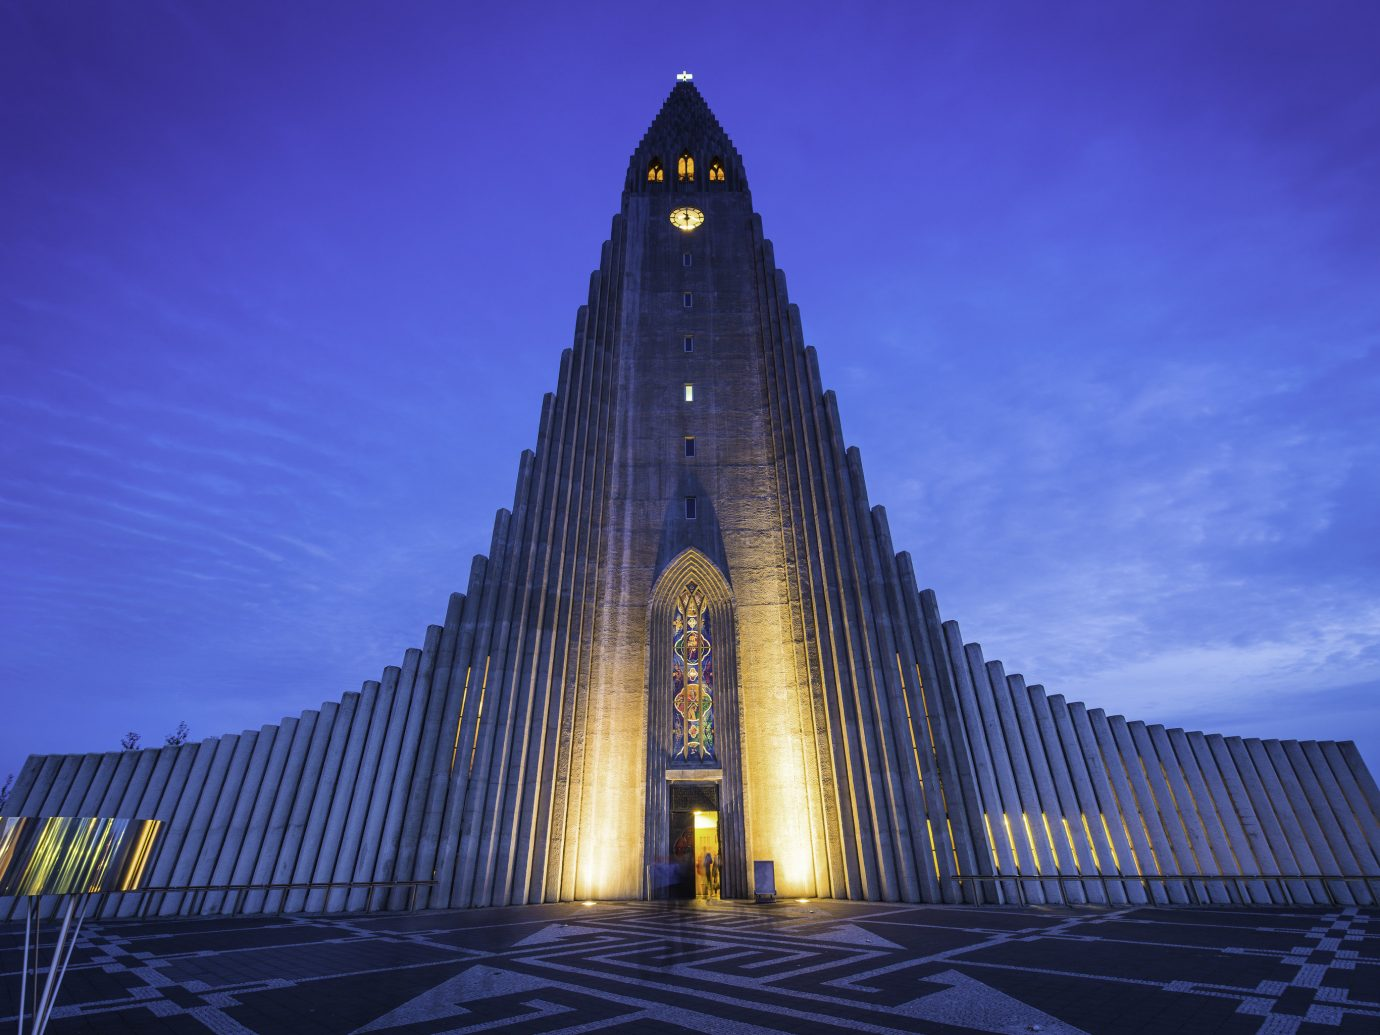 Budget Hotels Iceland Offbeat Outdoors + Adventure Road Trips Trip Ideas outdoor sky tower landmark night building spire place of worship evening cathedral monument symmetry